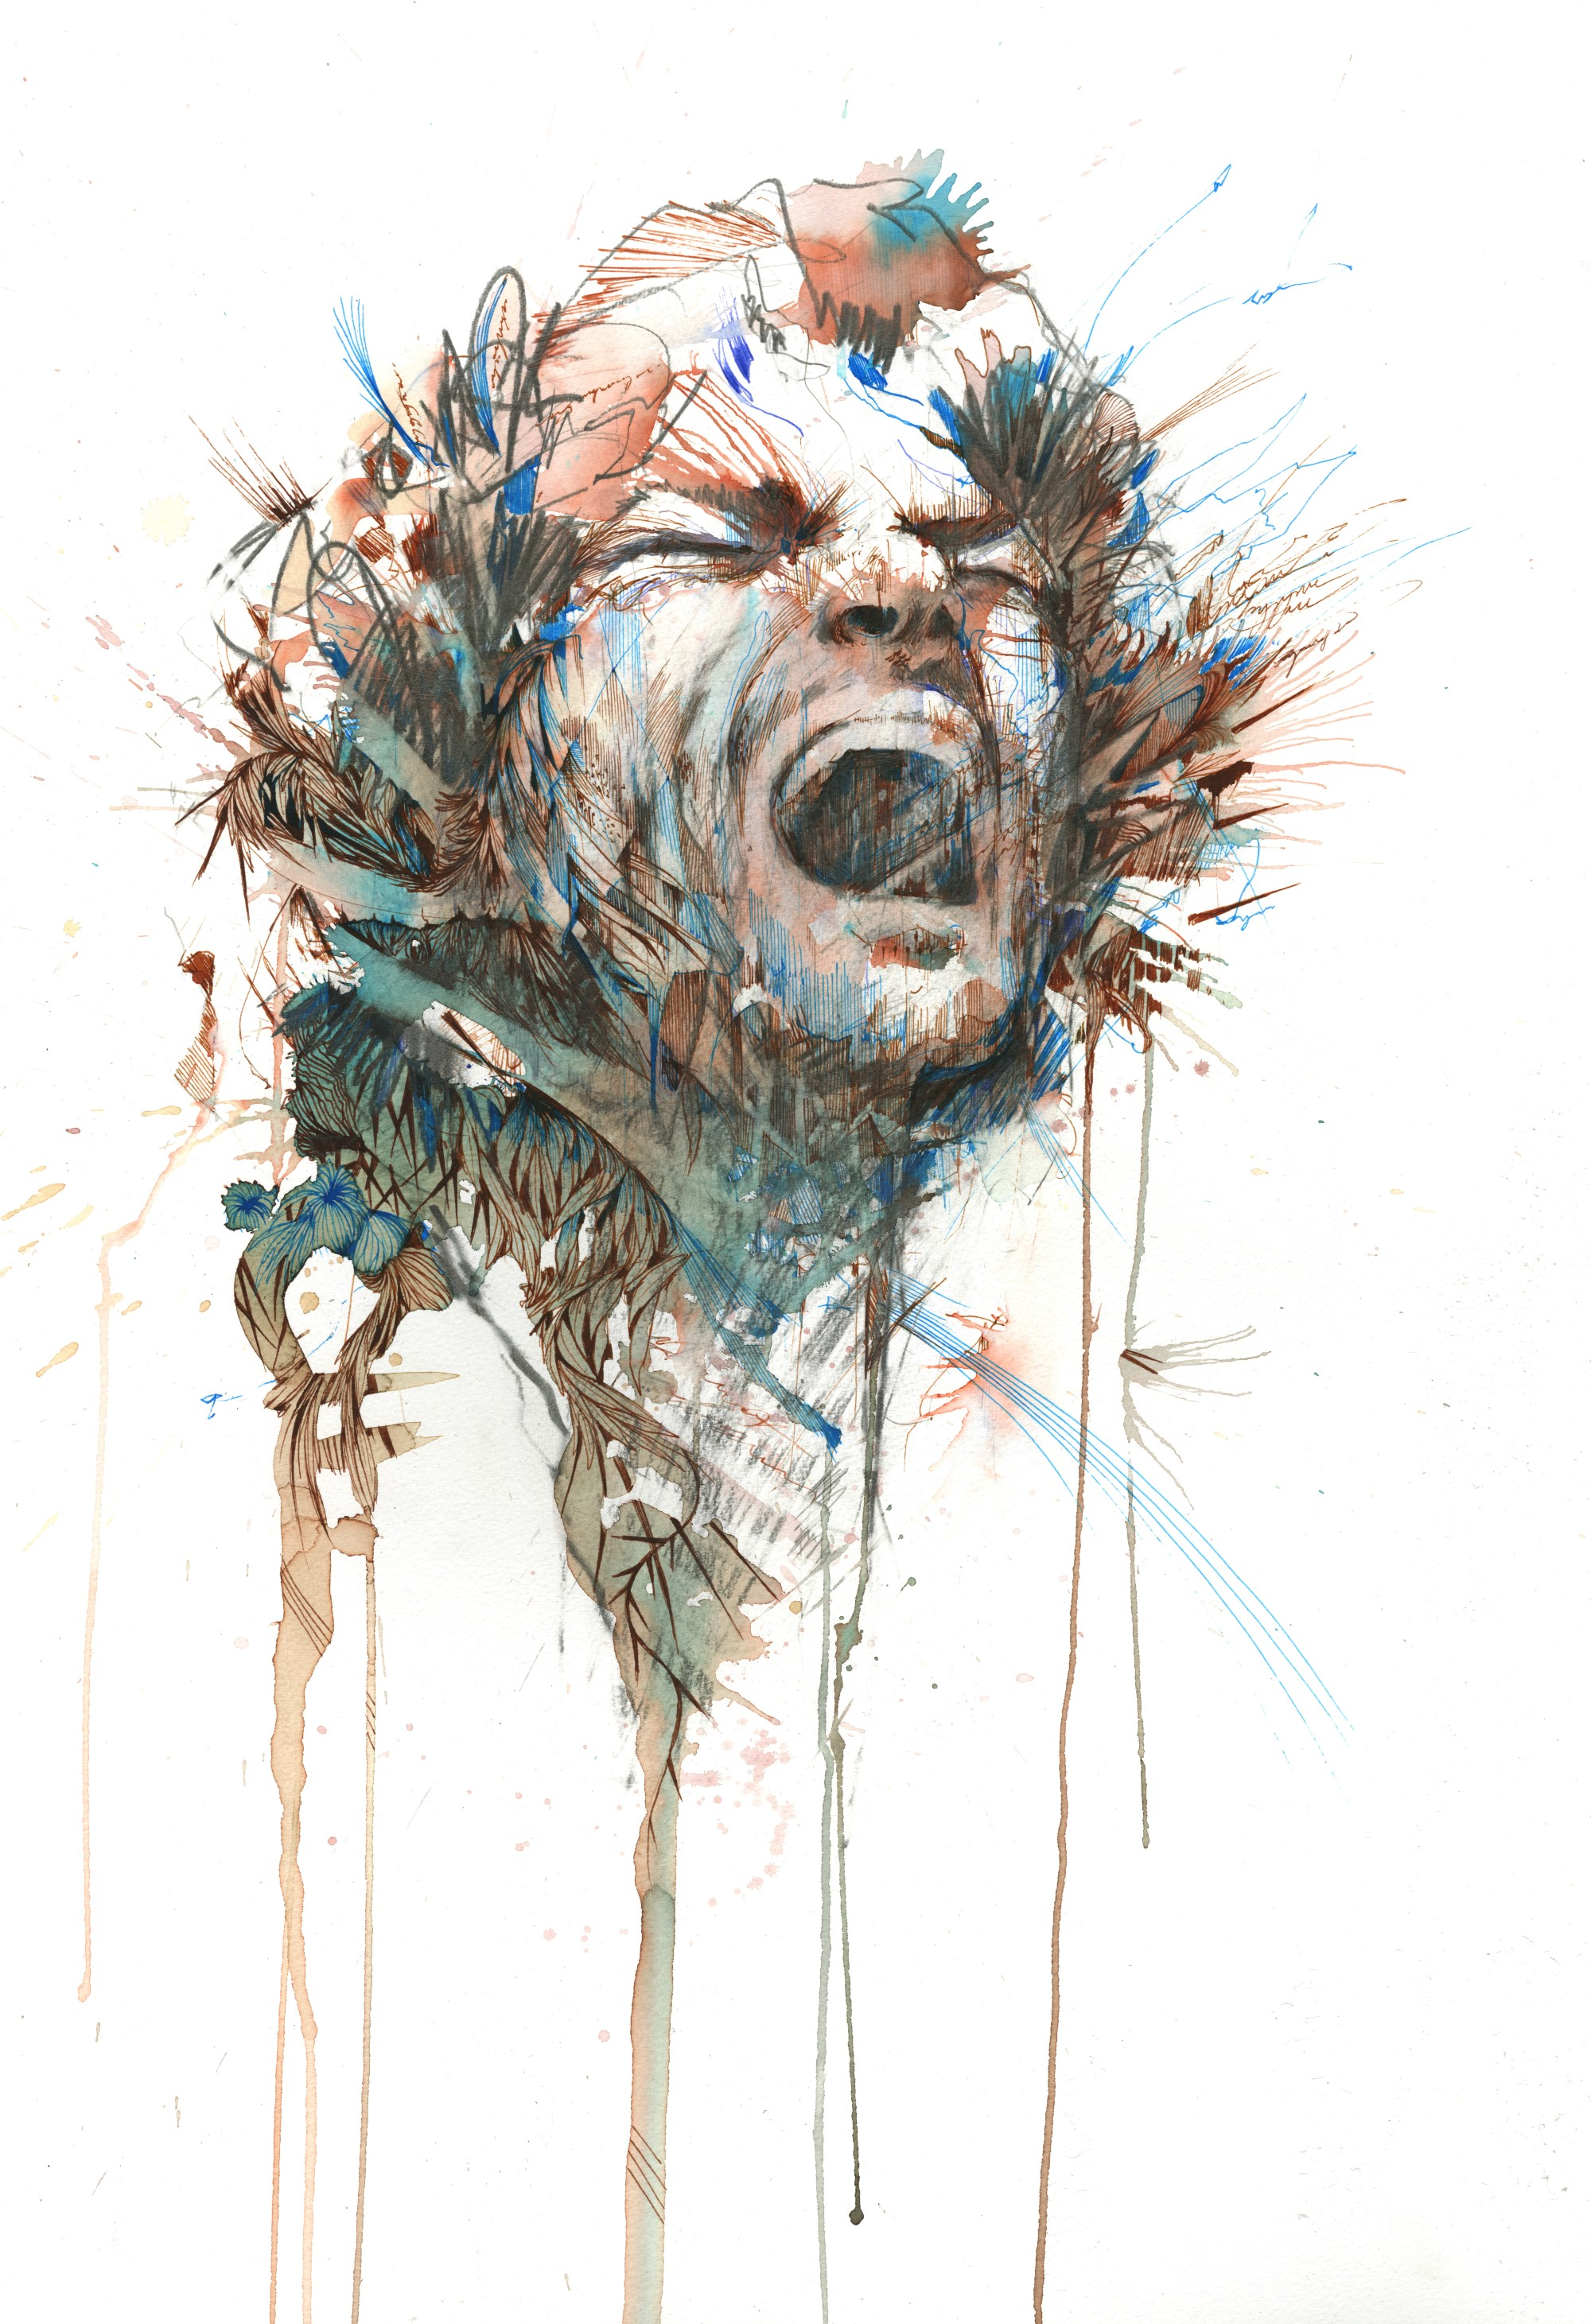 Scream by Carne Griffiths